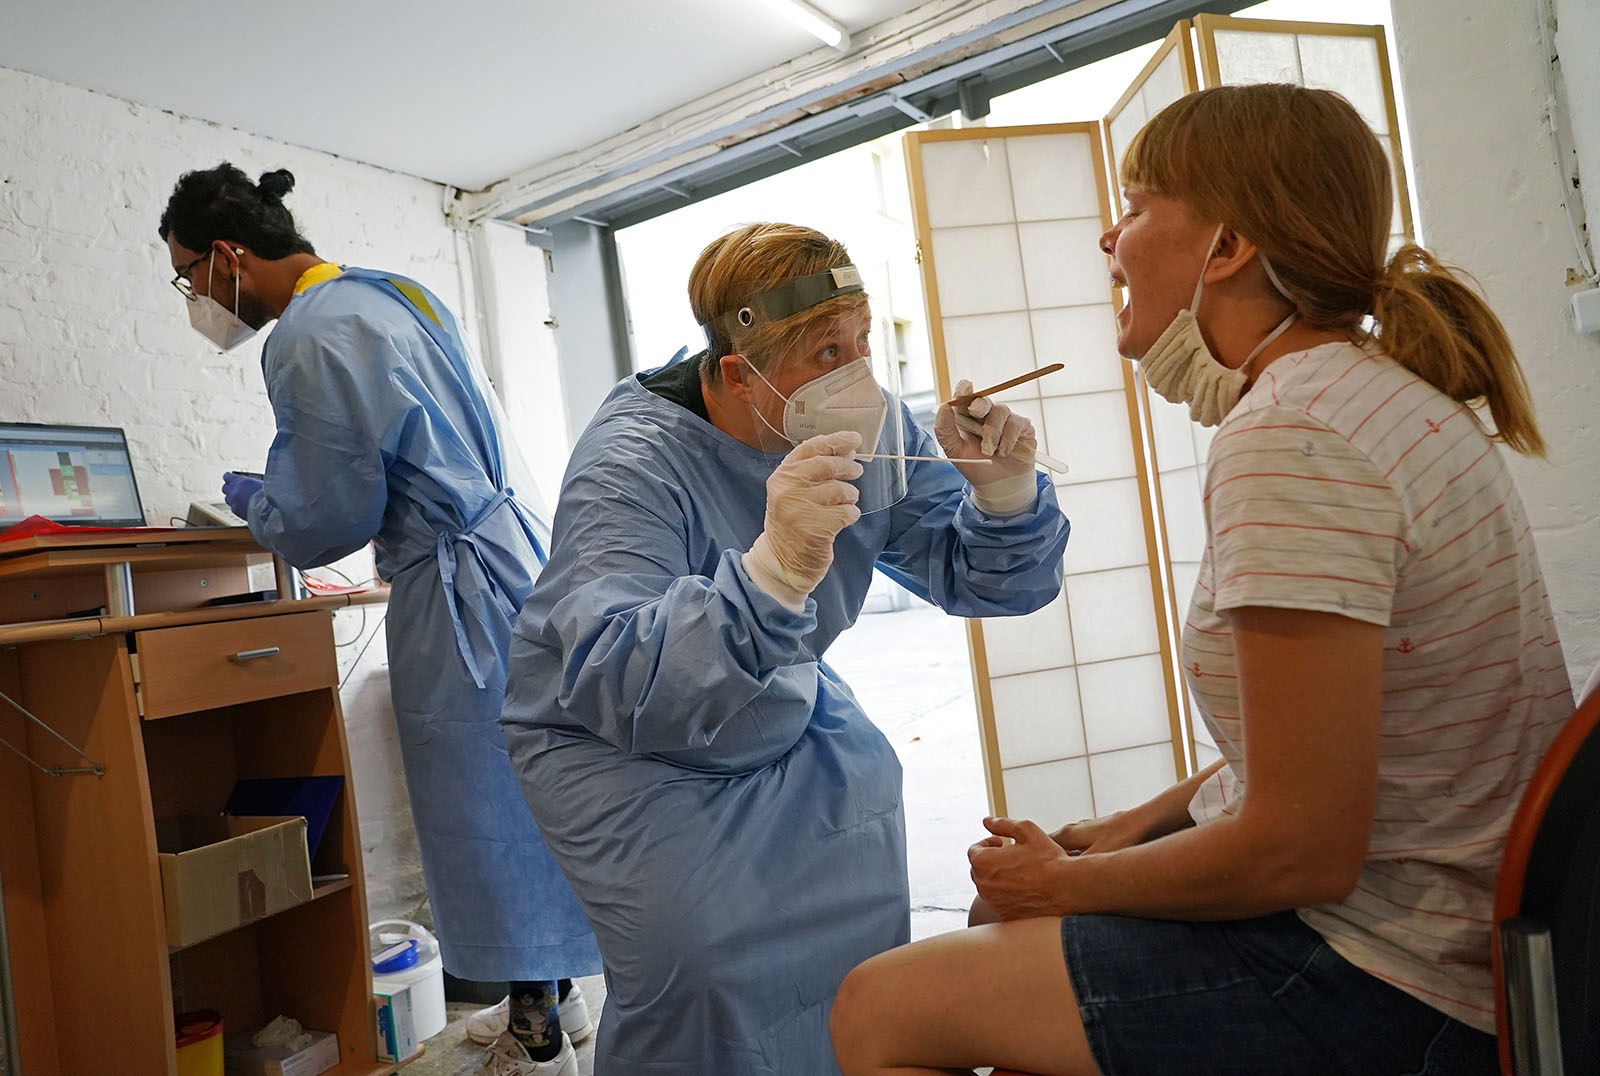 Dr. Wiebke Bergner takes a throat swab sample from a woman seeking a test for possible Covid-19 infection during the novel coronavirus pandemic on August 7, in Berlin, Germany.